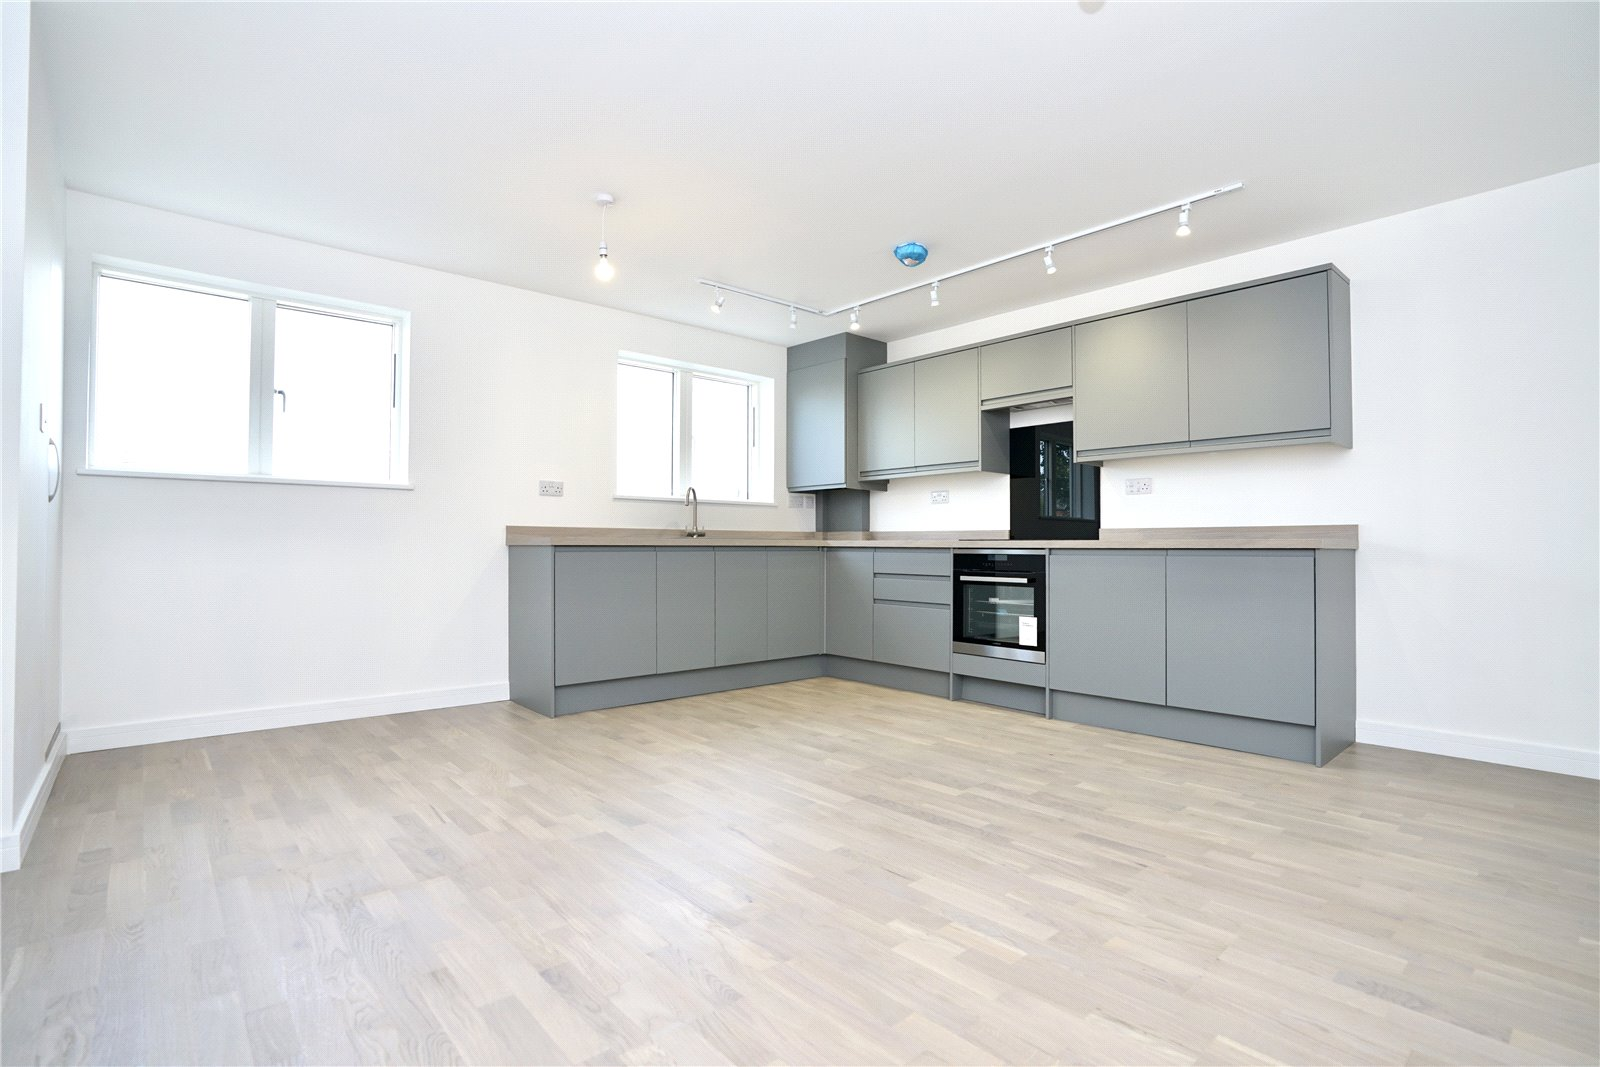 2 bed apartment for sale in Fairfields Drive, PE26 1NQ - Property Image 1